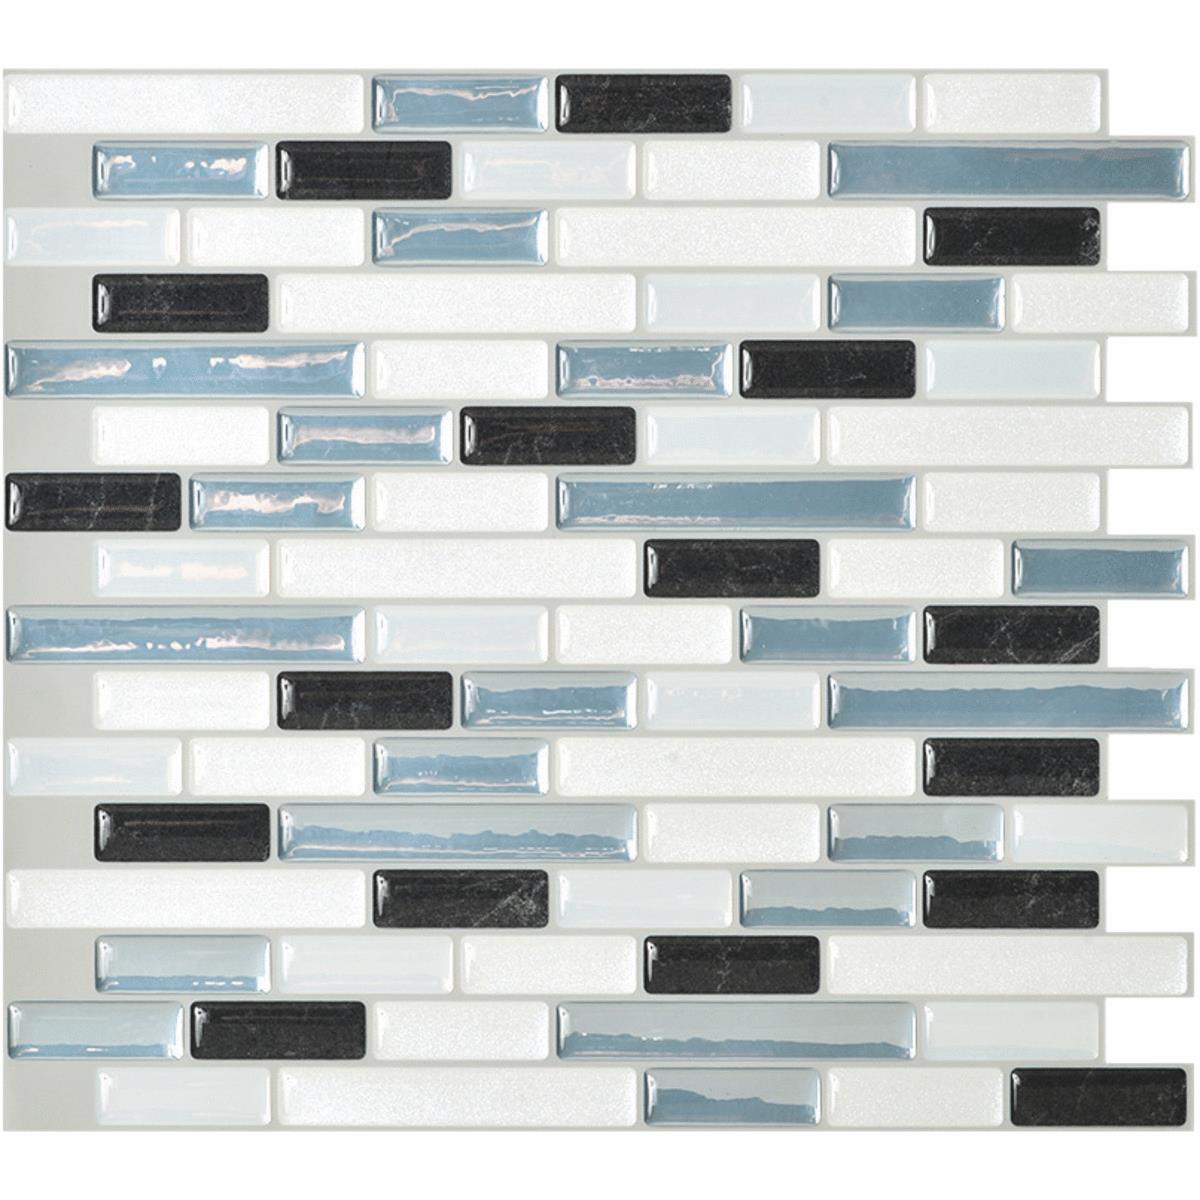 - Smart Tiles 10.2 In. X 9.1 In. Glass-Like Plastic Backsplash Peel